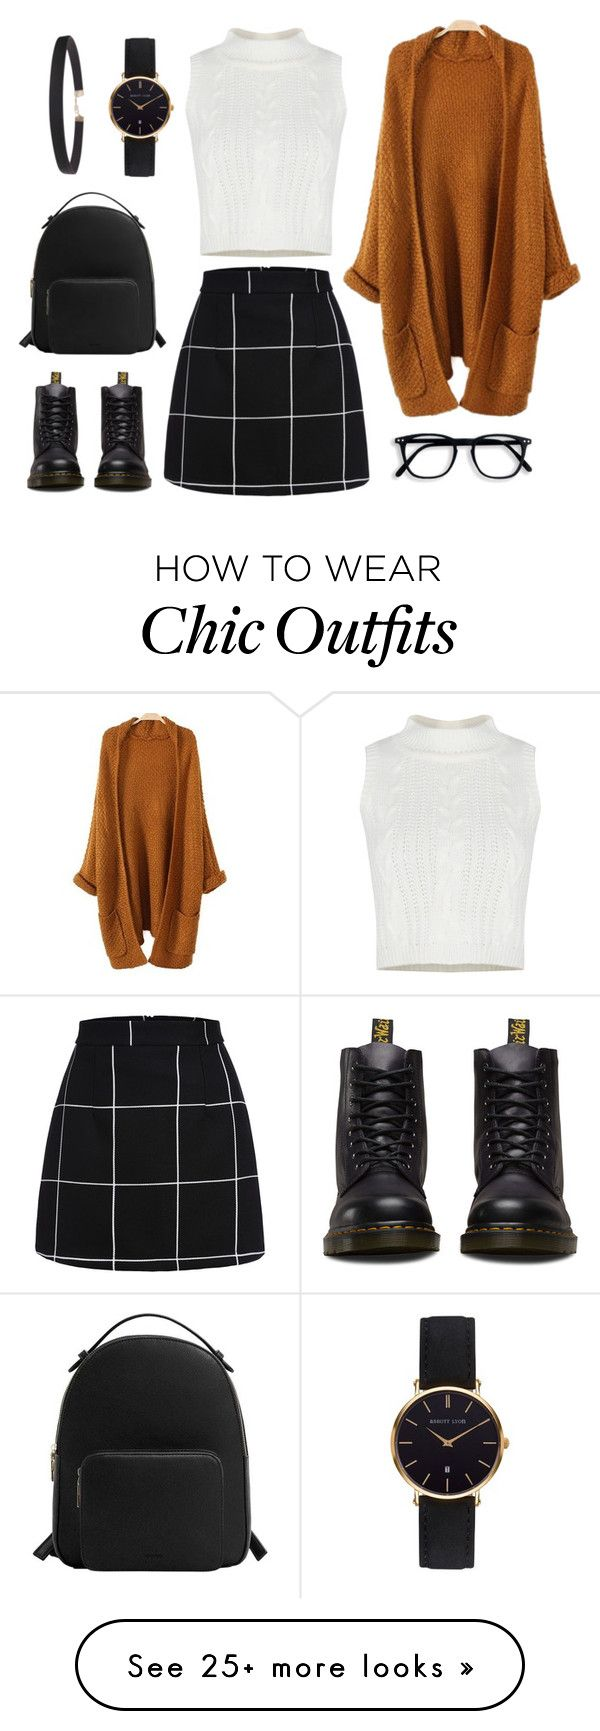 """Look"" by sasha-karsakova on Polyvore featuring Dr. Martens, MANGO, Abbott Lyon and Humble Chic"